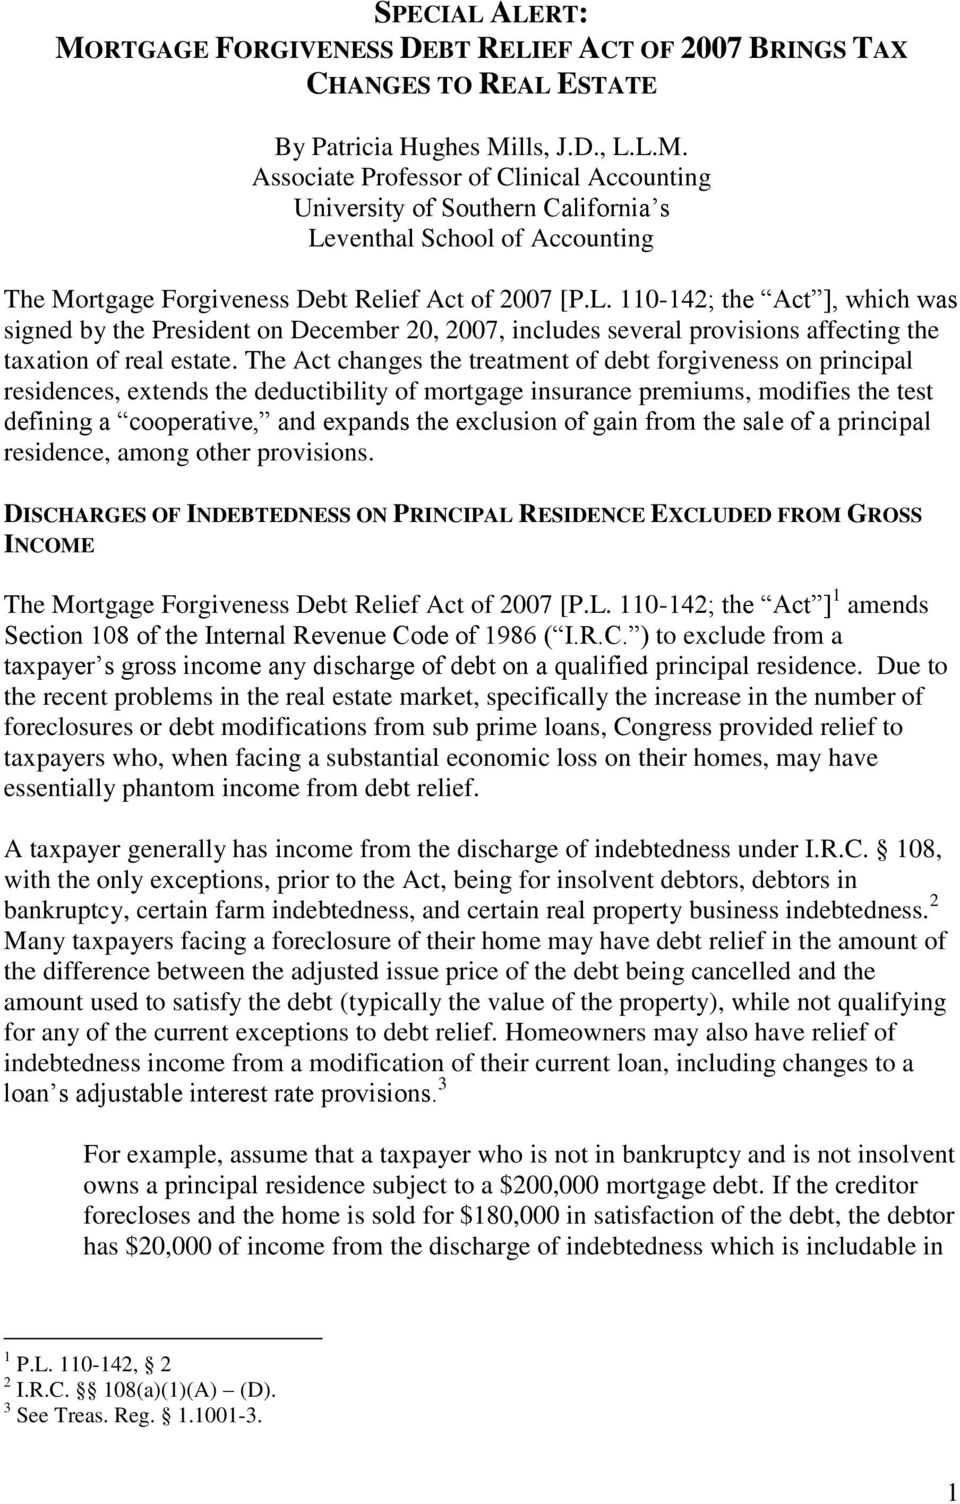 The Act changes the treatment of debt forgiveness on principal residences, extends the deductibility of mortgage insurance premiums, modifies the test defining a cooperative, and expands the